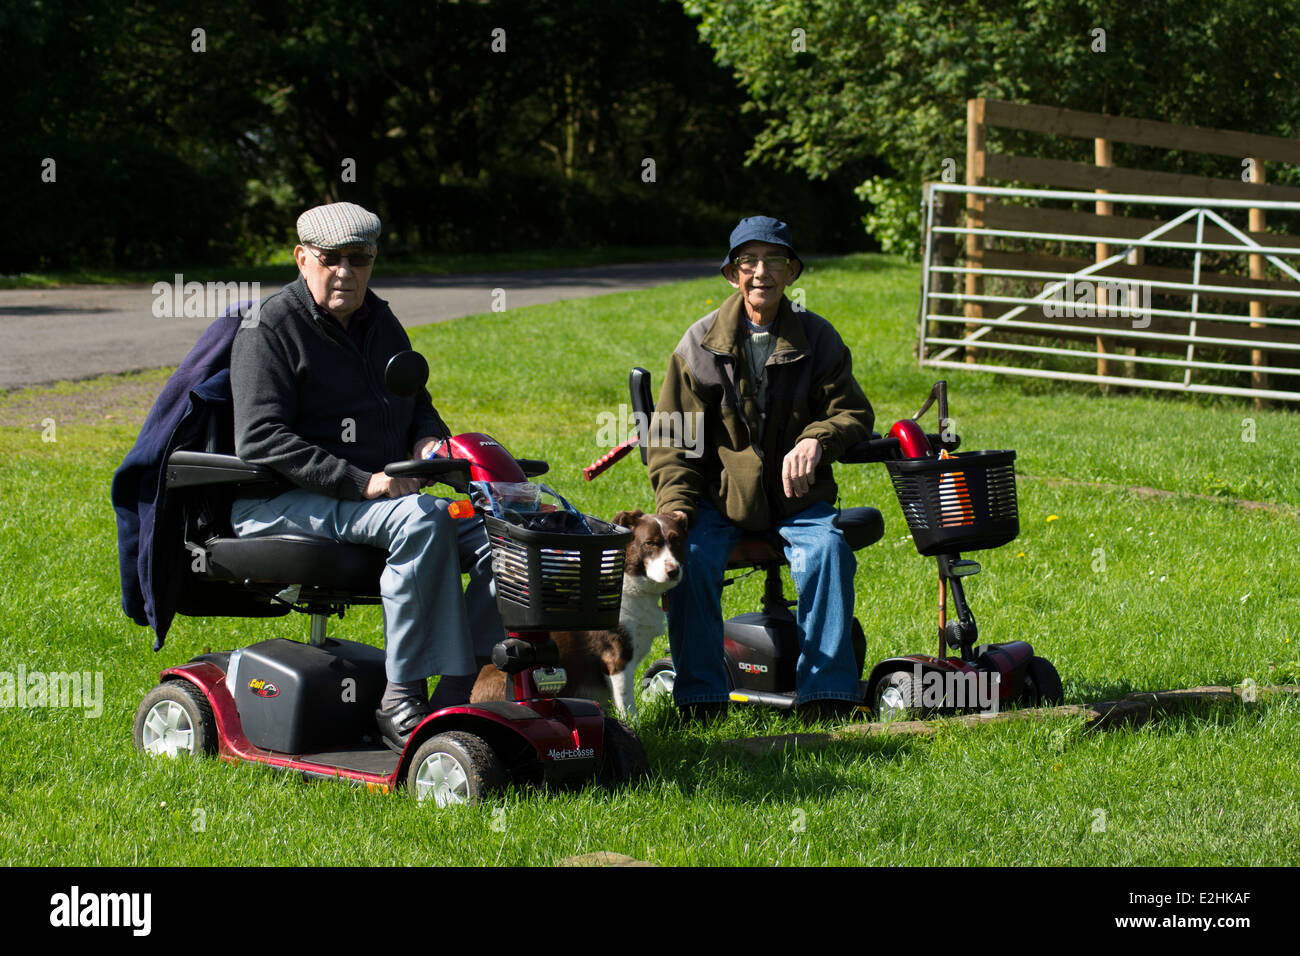 Two elderly men enjoy a trip out on their disability scooters in the sunshine. - Stock Image